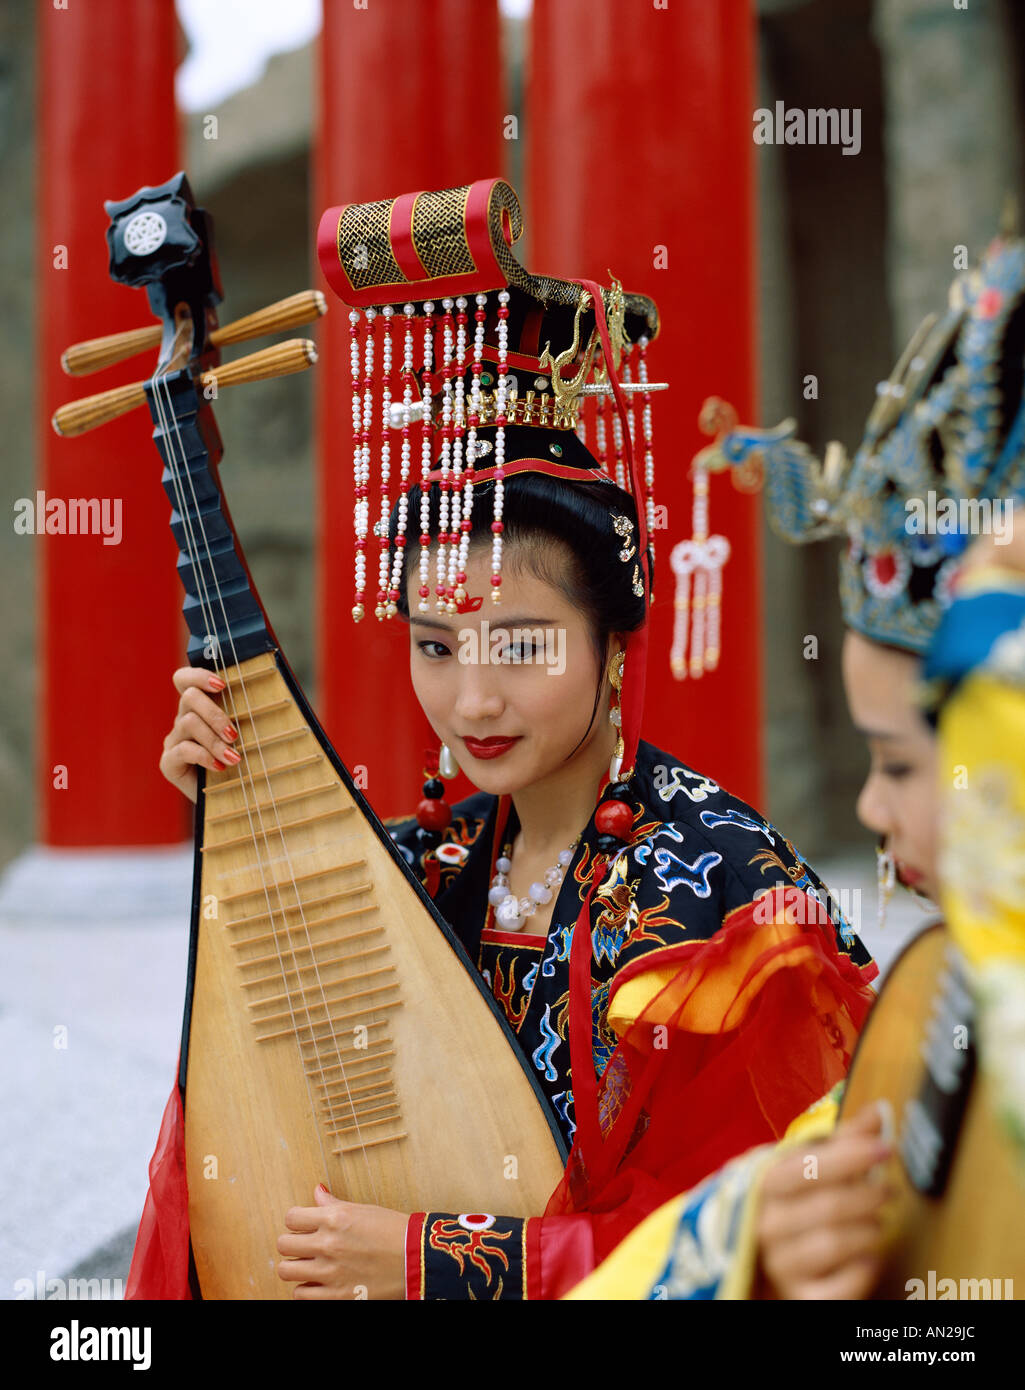 Women Dressed in Traditional Costume Playing  Three Stringed Lute, Beijing, China - Stock Image